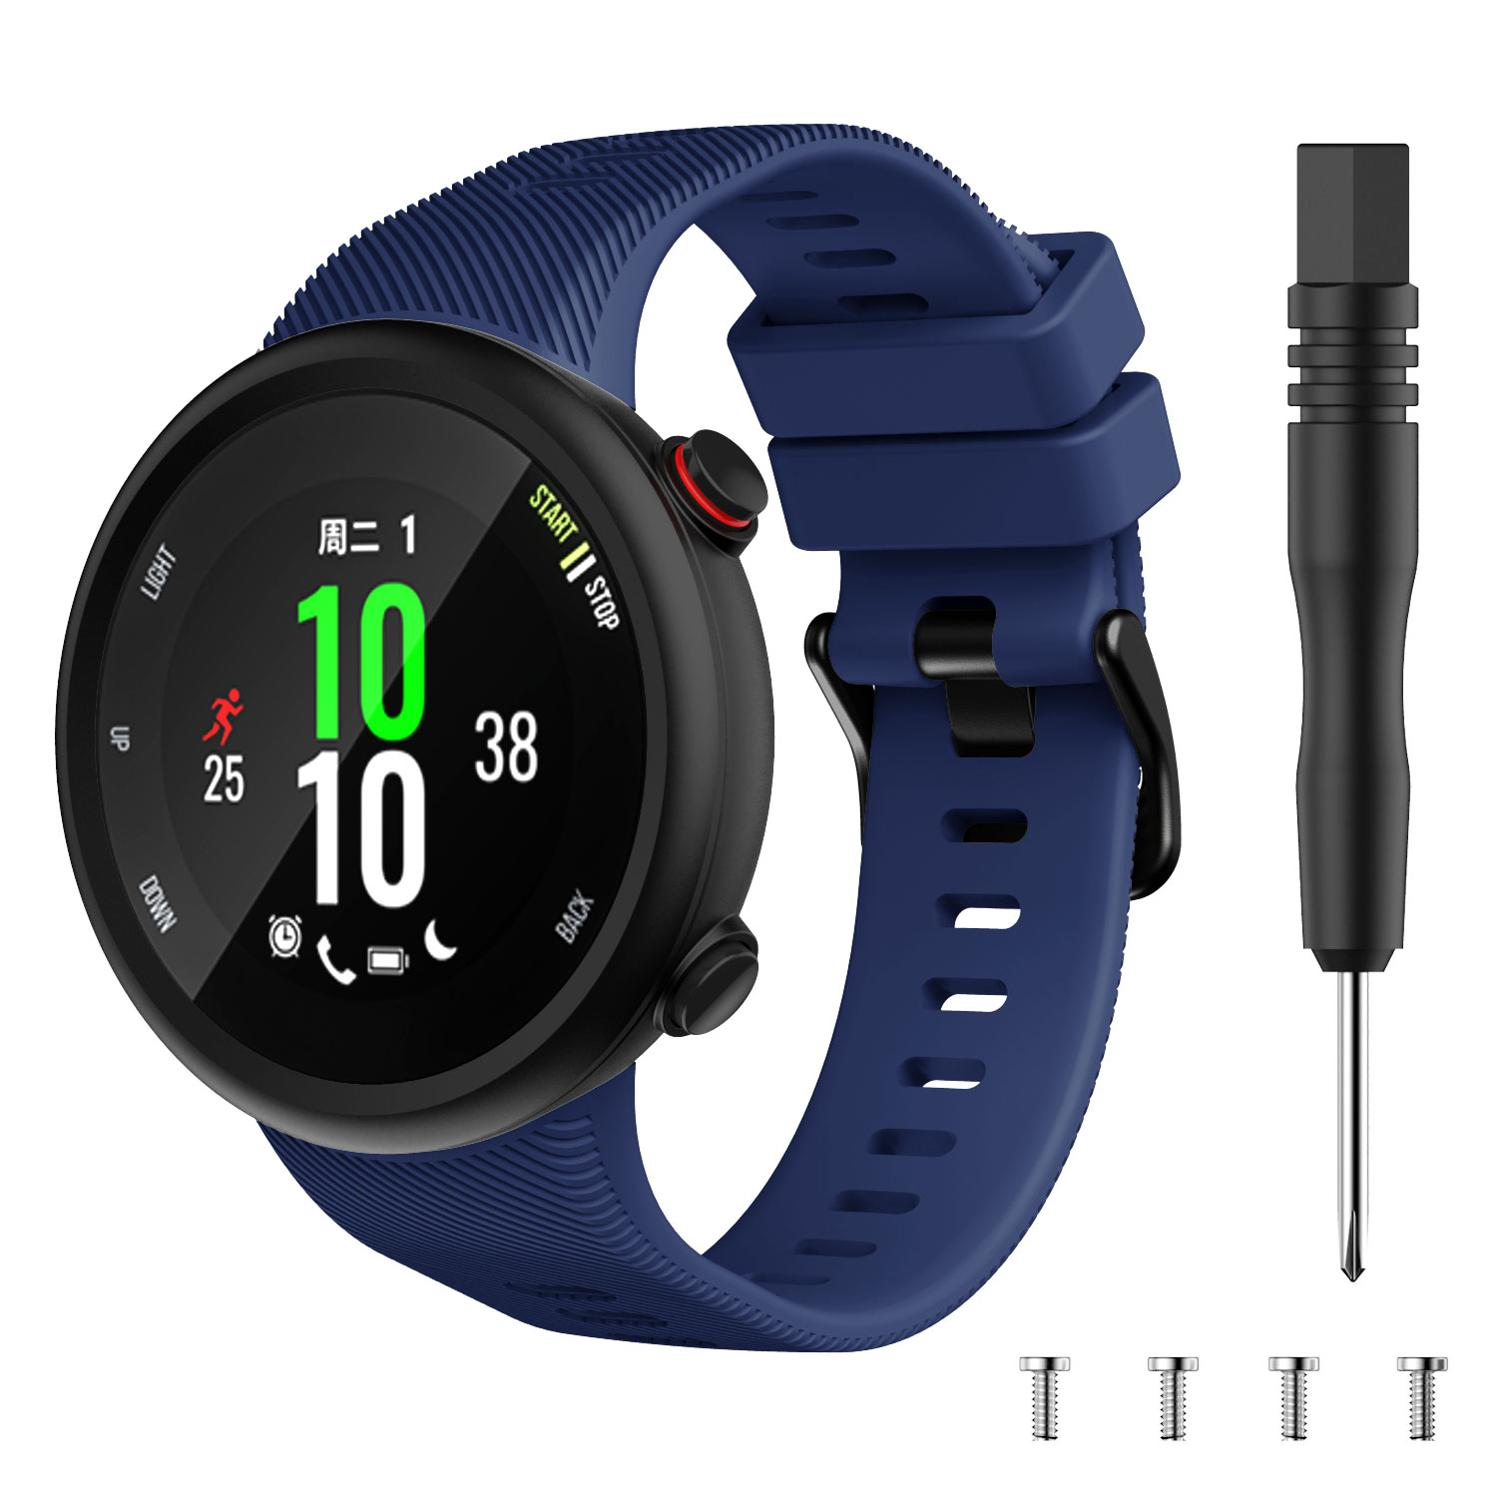 New Replacement Watch Strap Band For Garmin Forerunner 45 45S Soft Sport Silicone Smart Watches Bands Wristbands Bracelet +tool